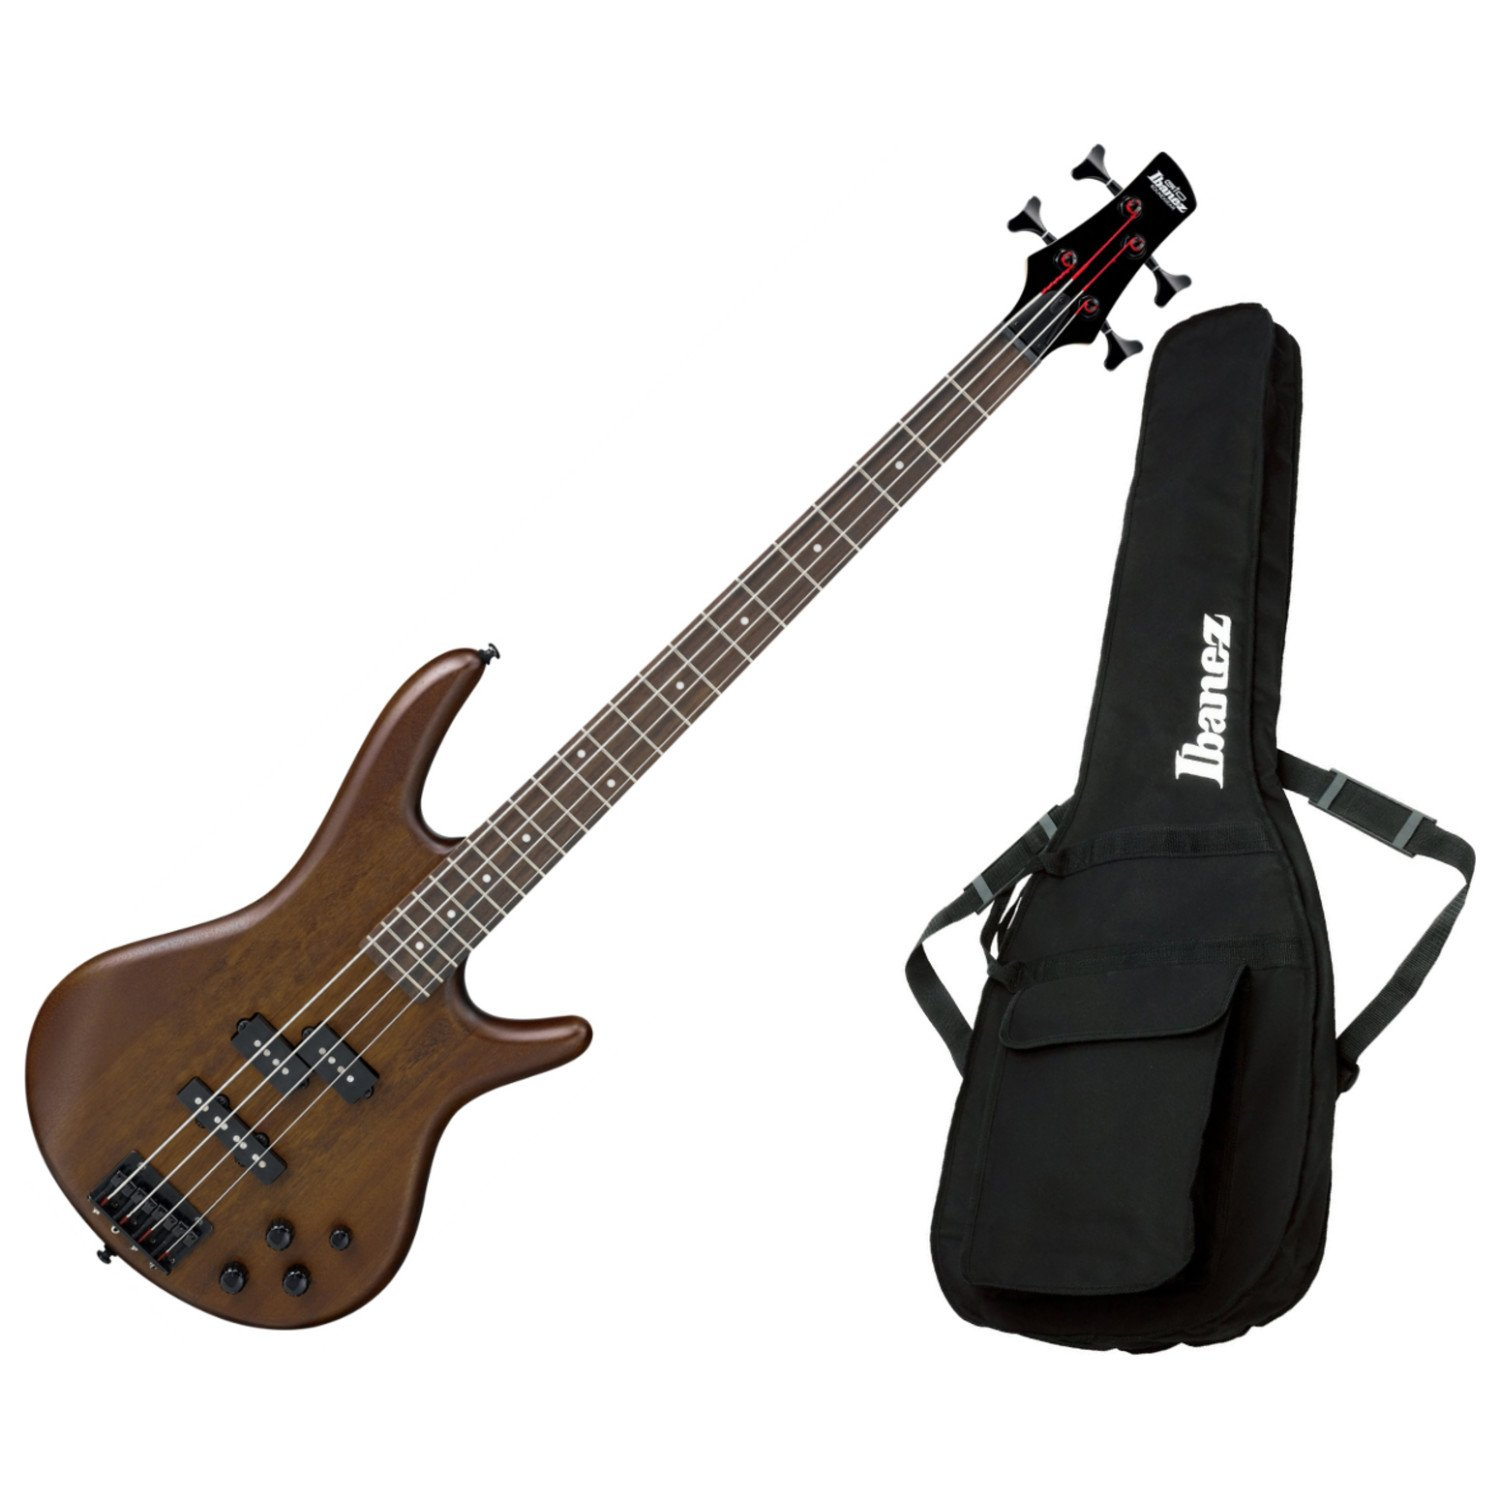 Ibanez GSR200BWNF 4-String Electric Bass Walunt Flat Finish with Gig Bag